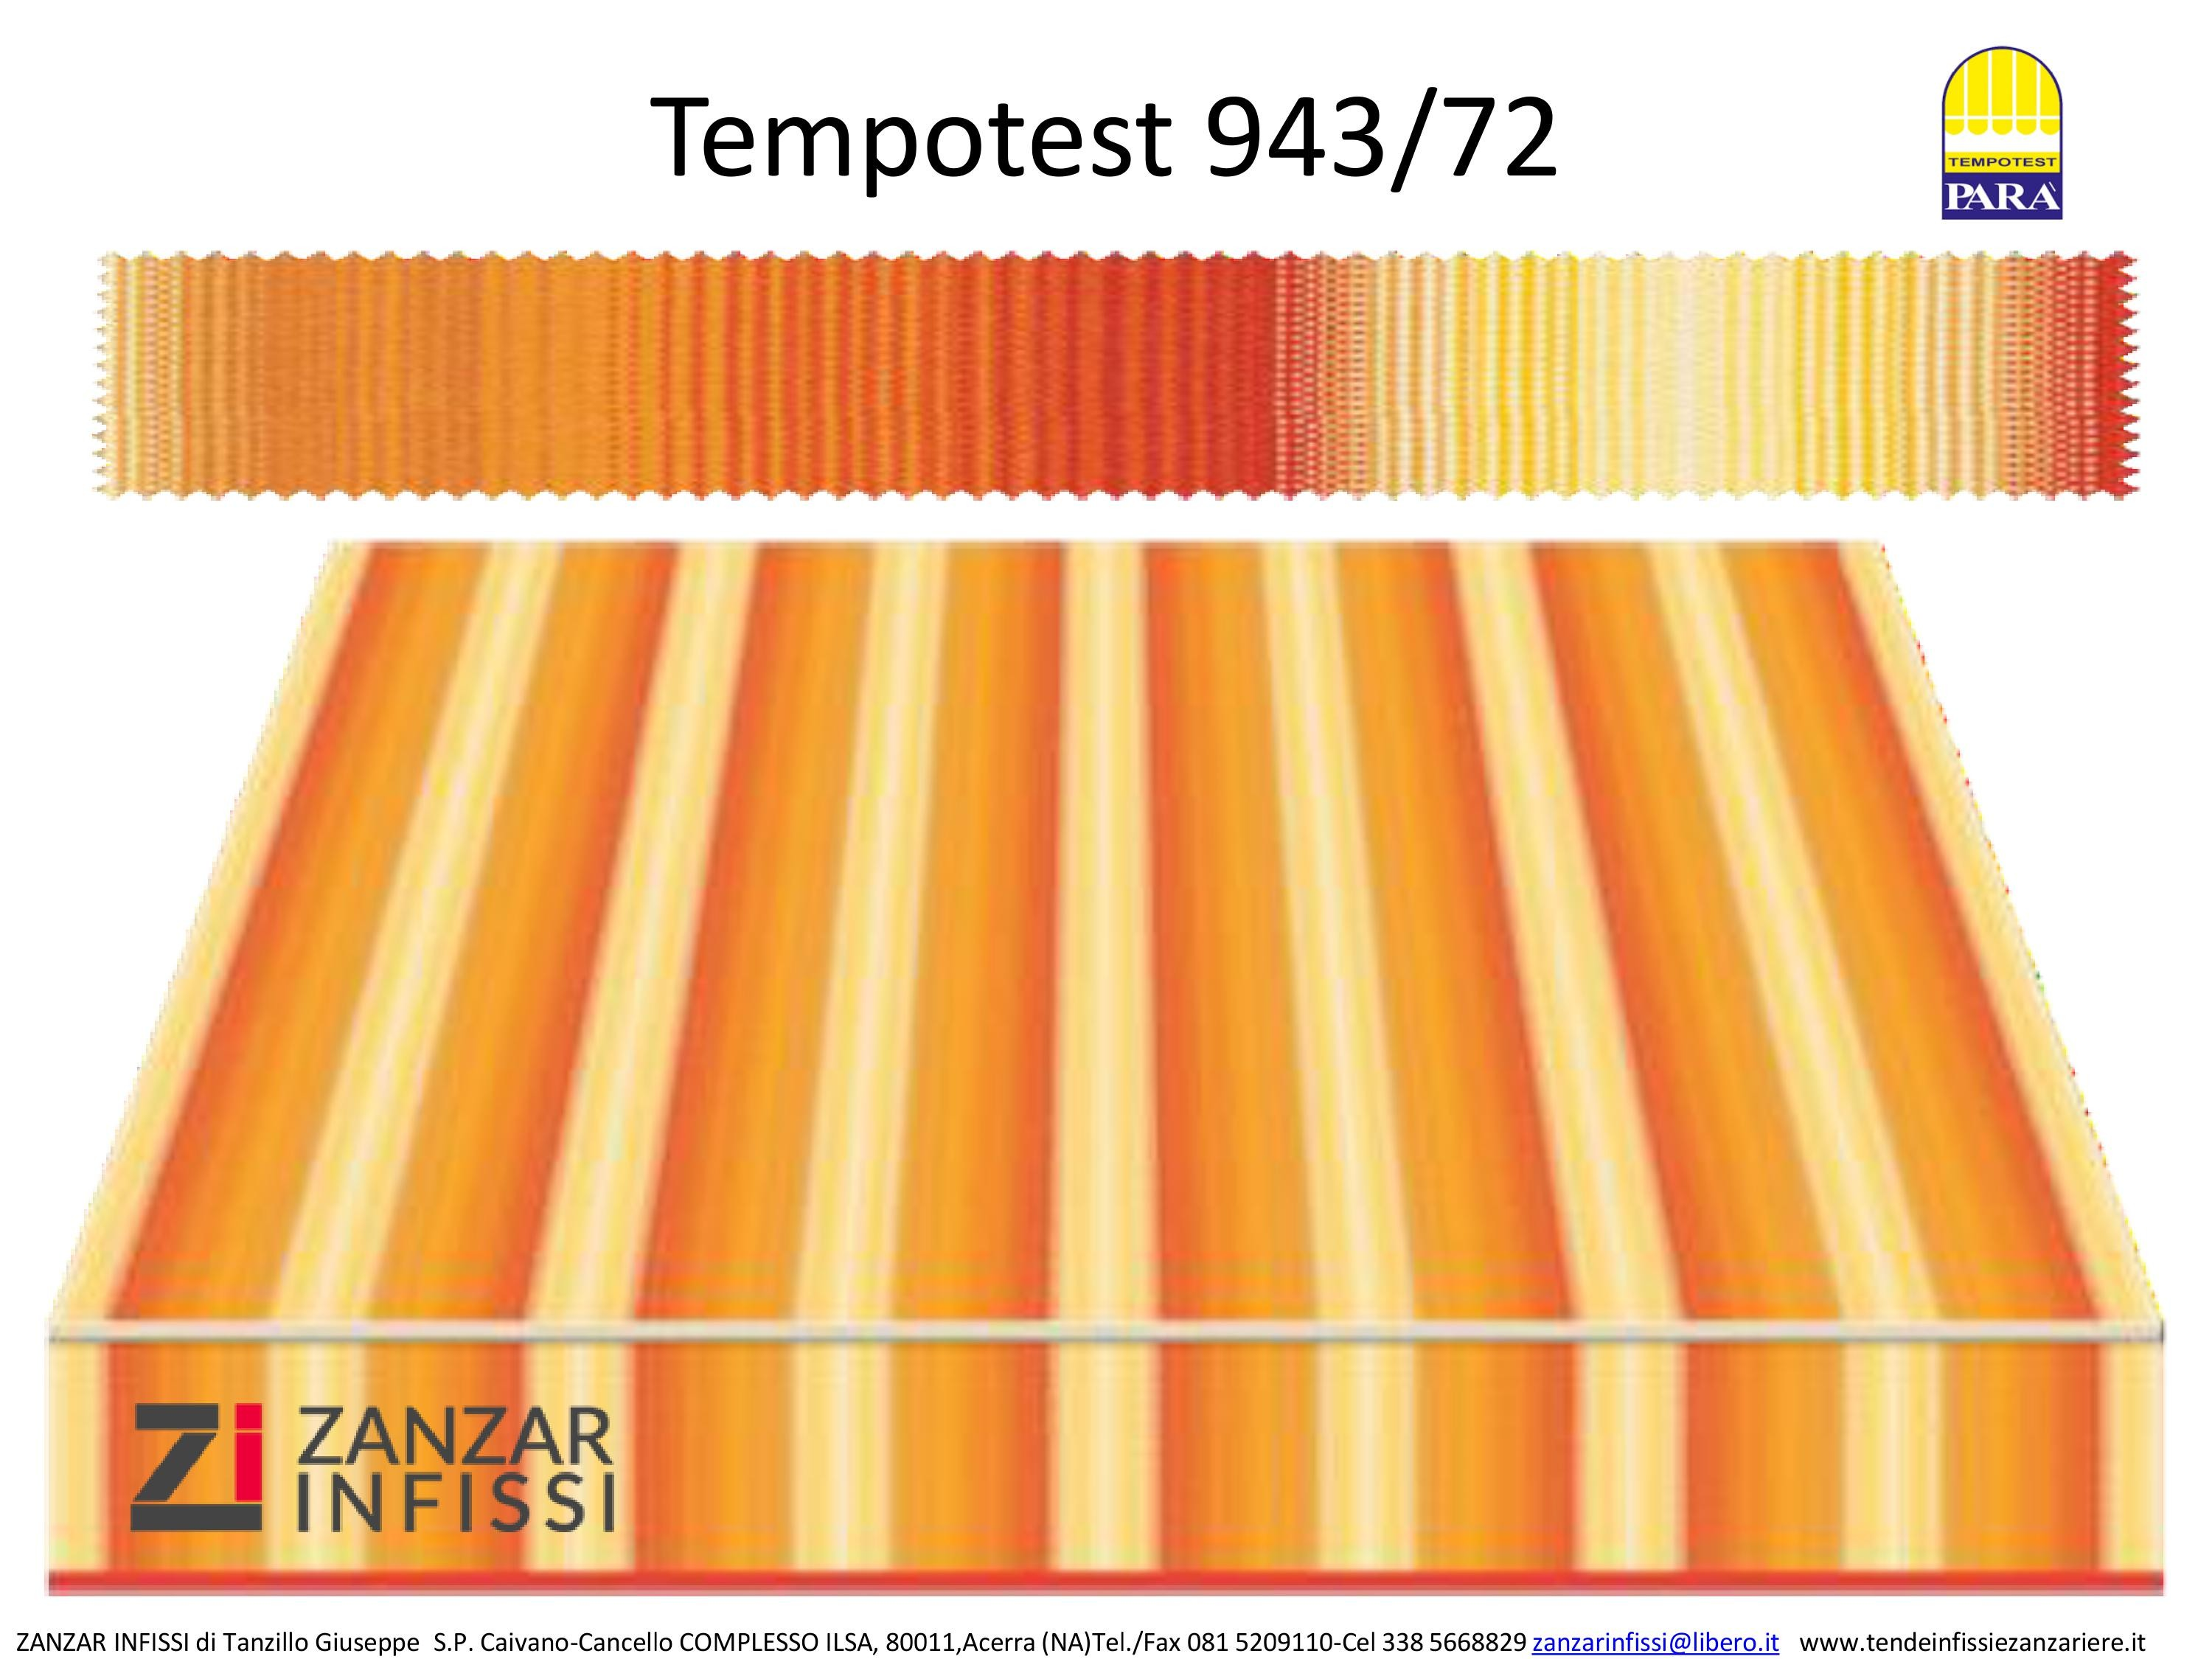 Tempotest 943/72